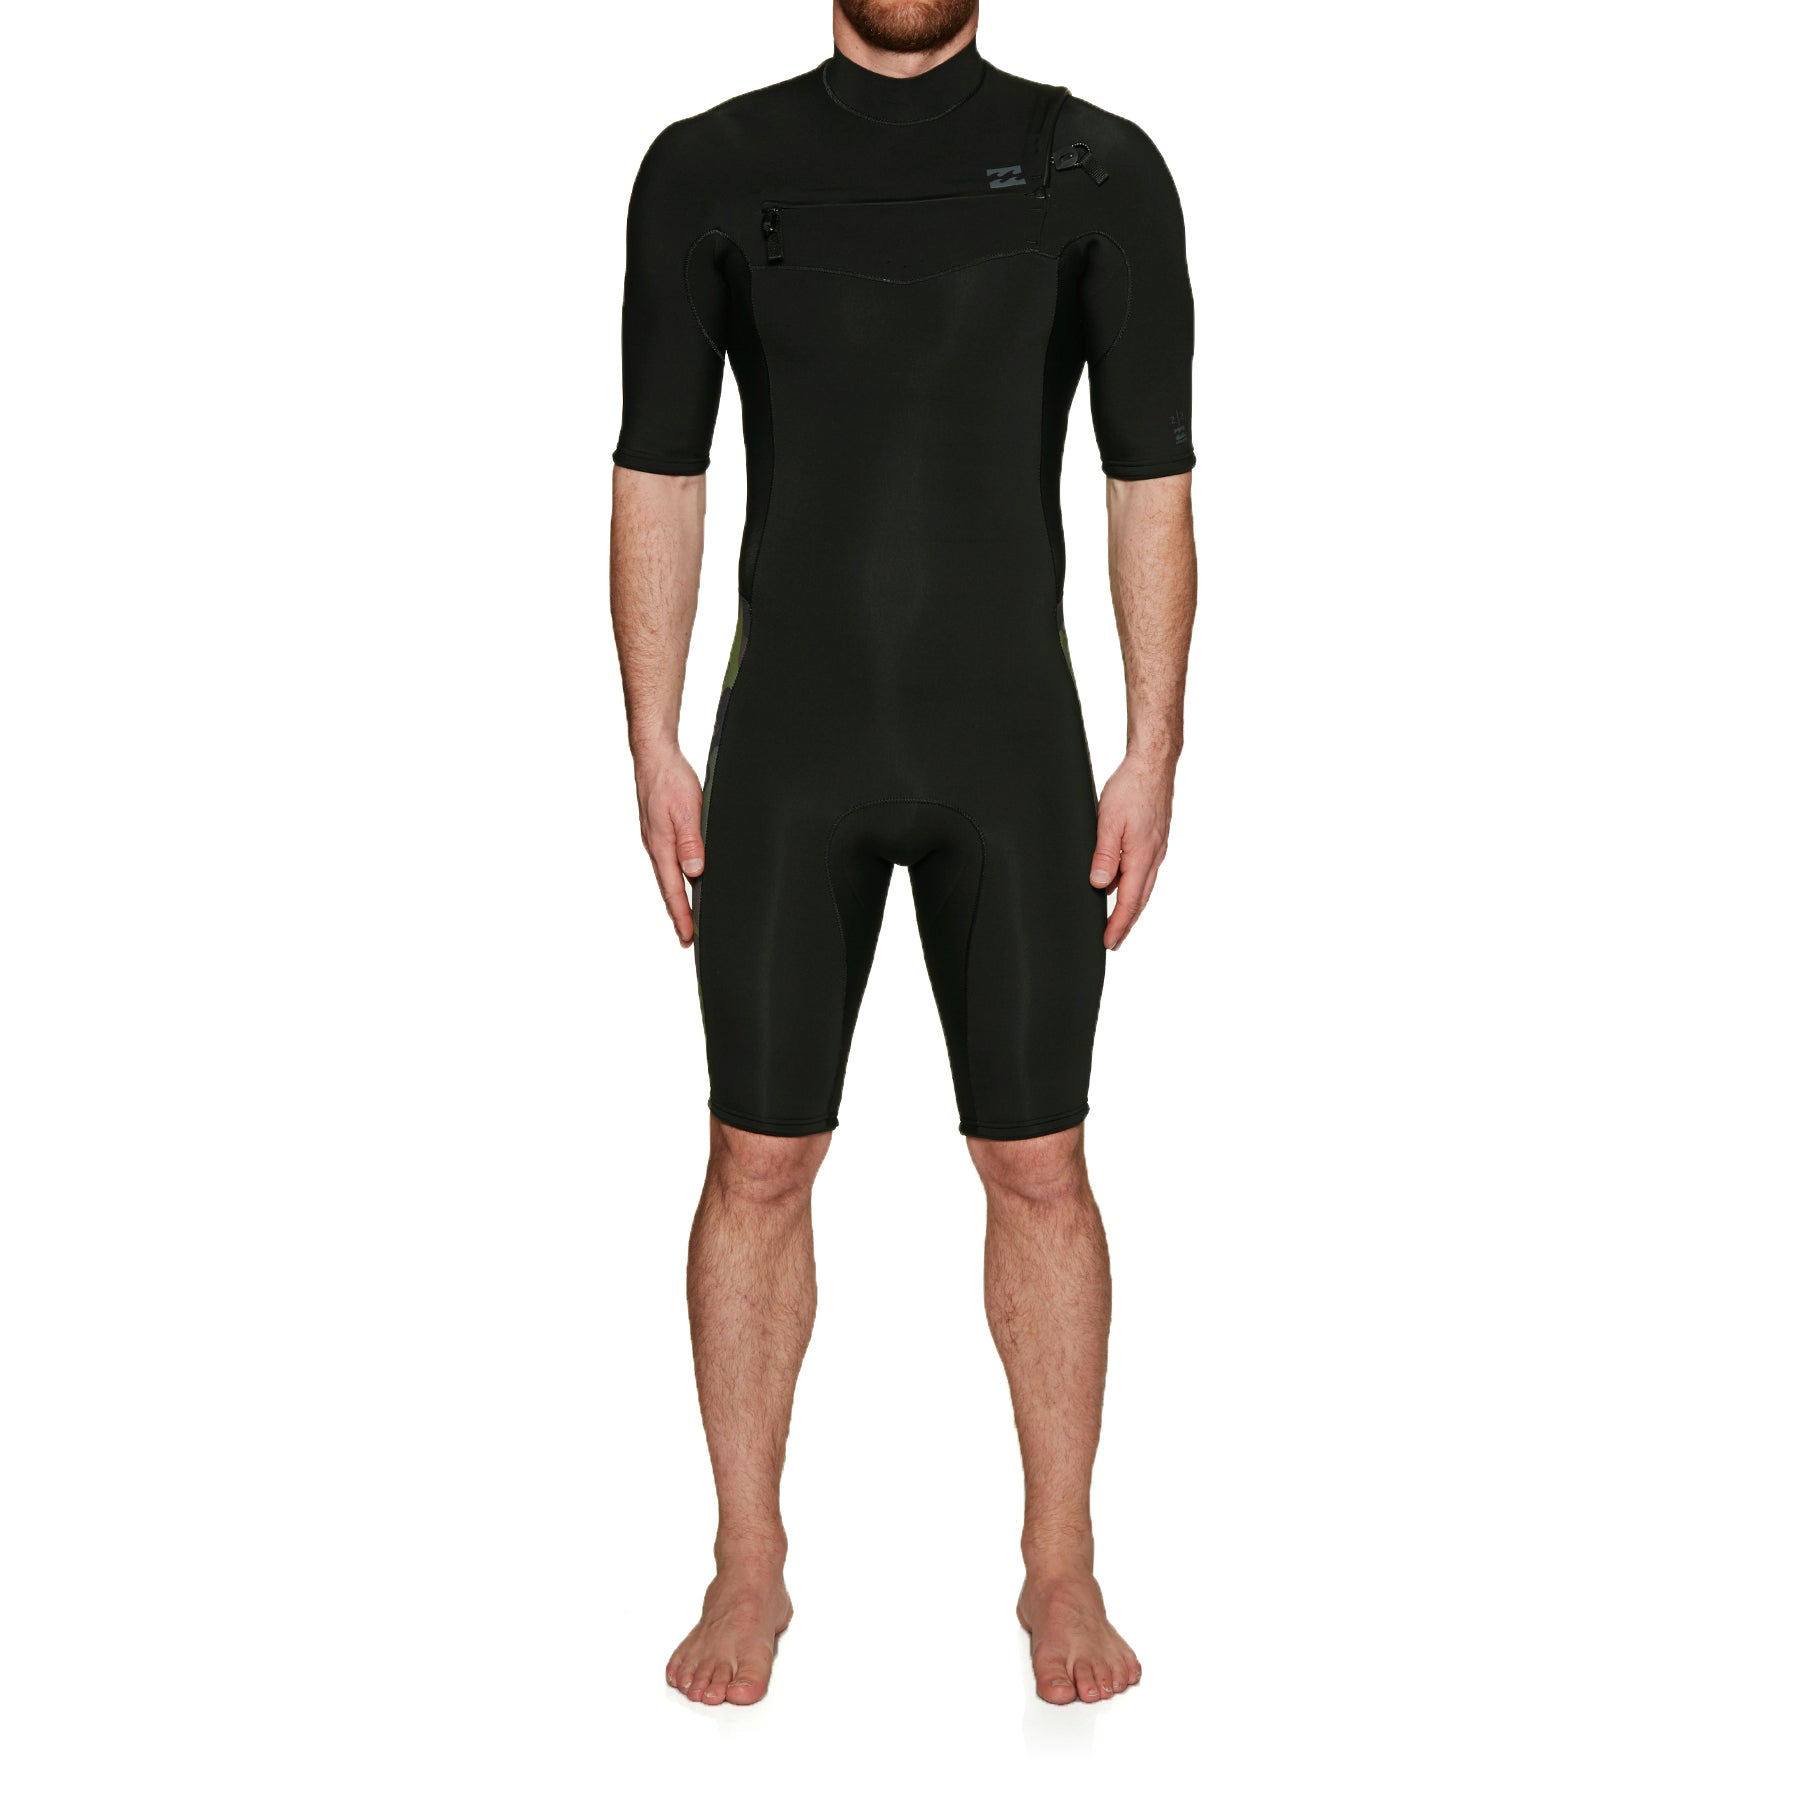 Traje de neopreno Billabong Revolution 2mm 2019 Chest Zip Shorty